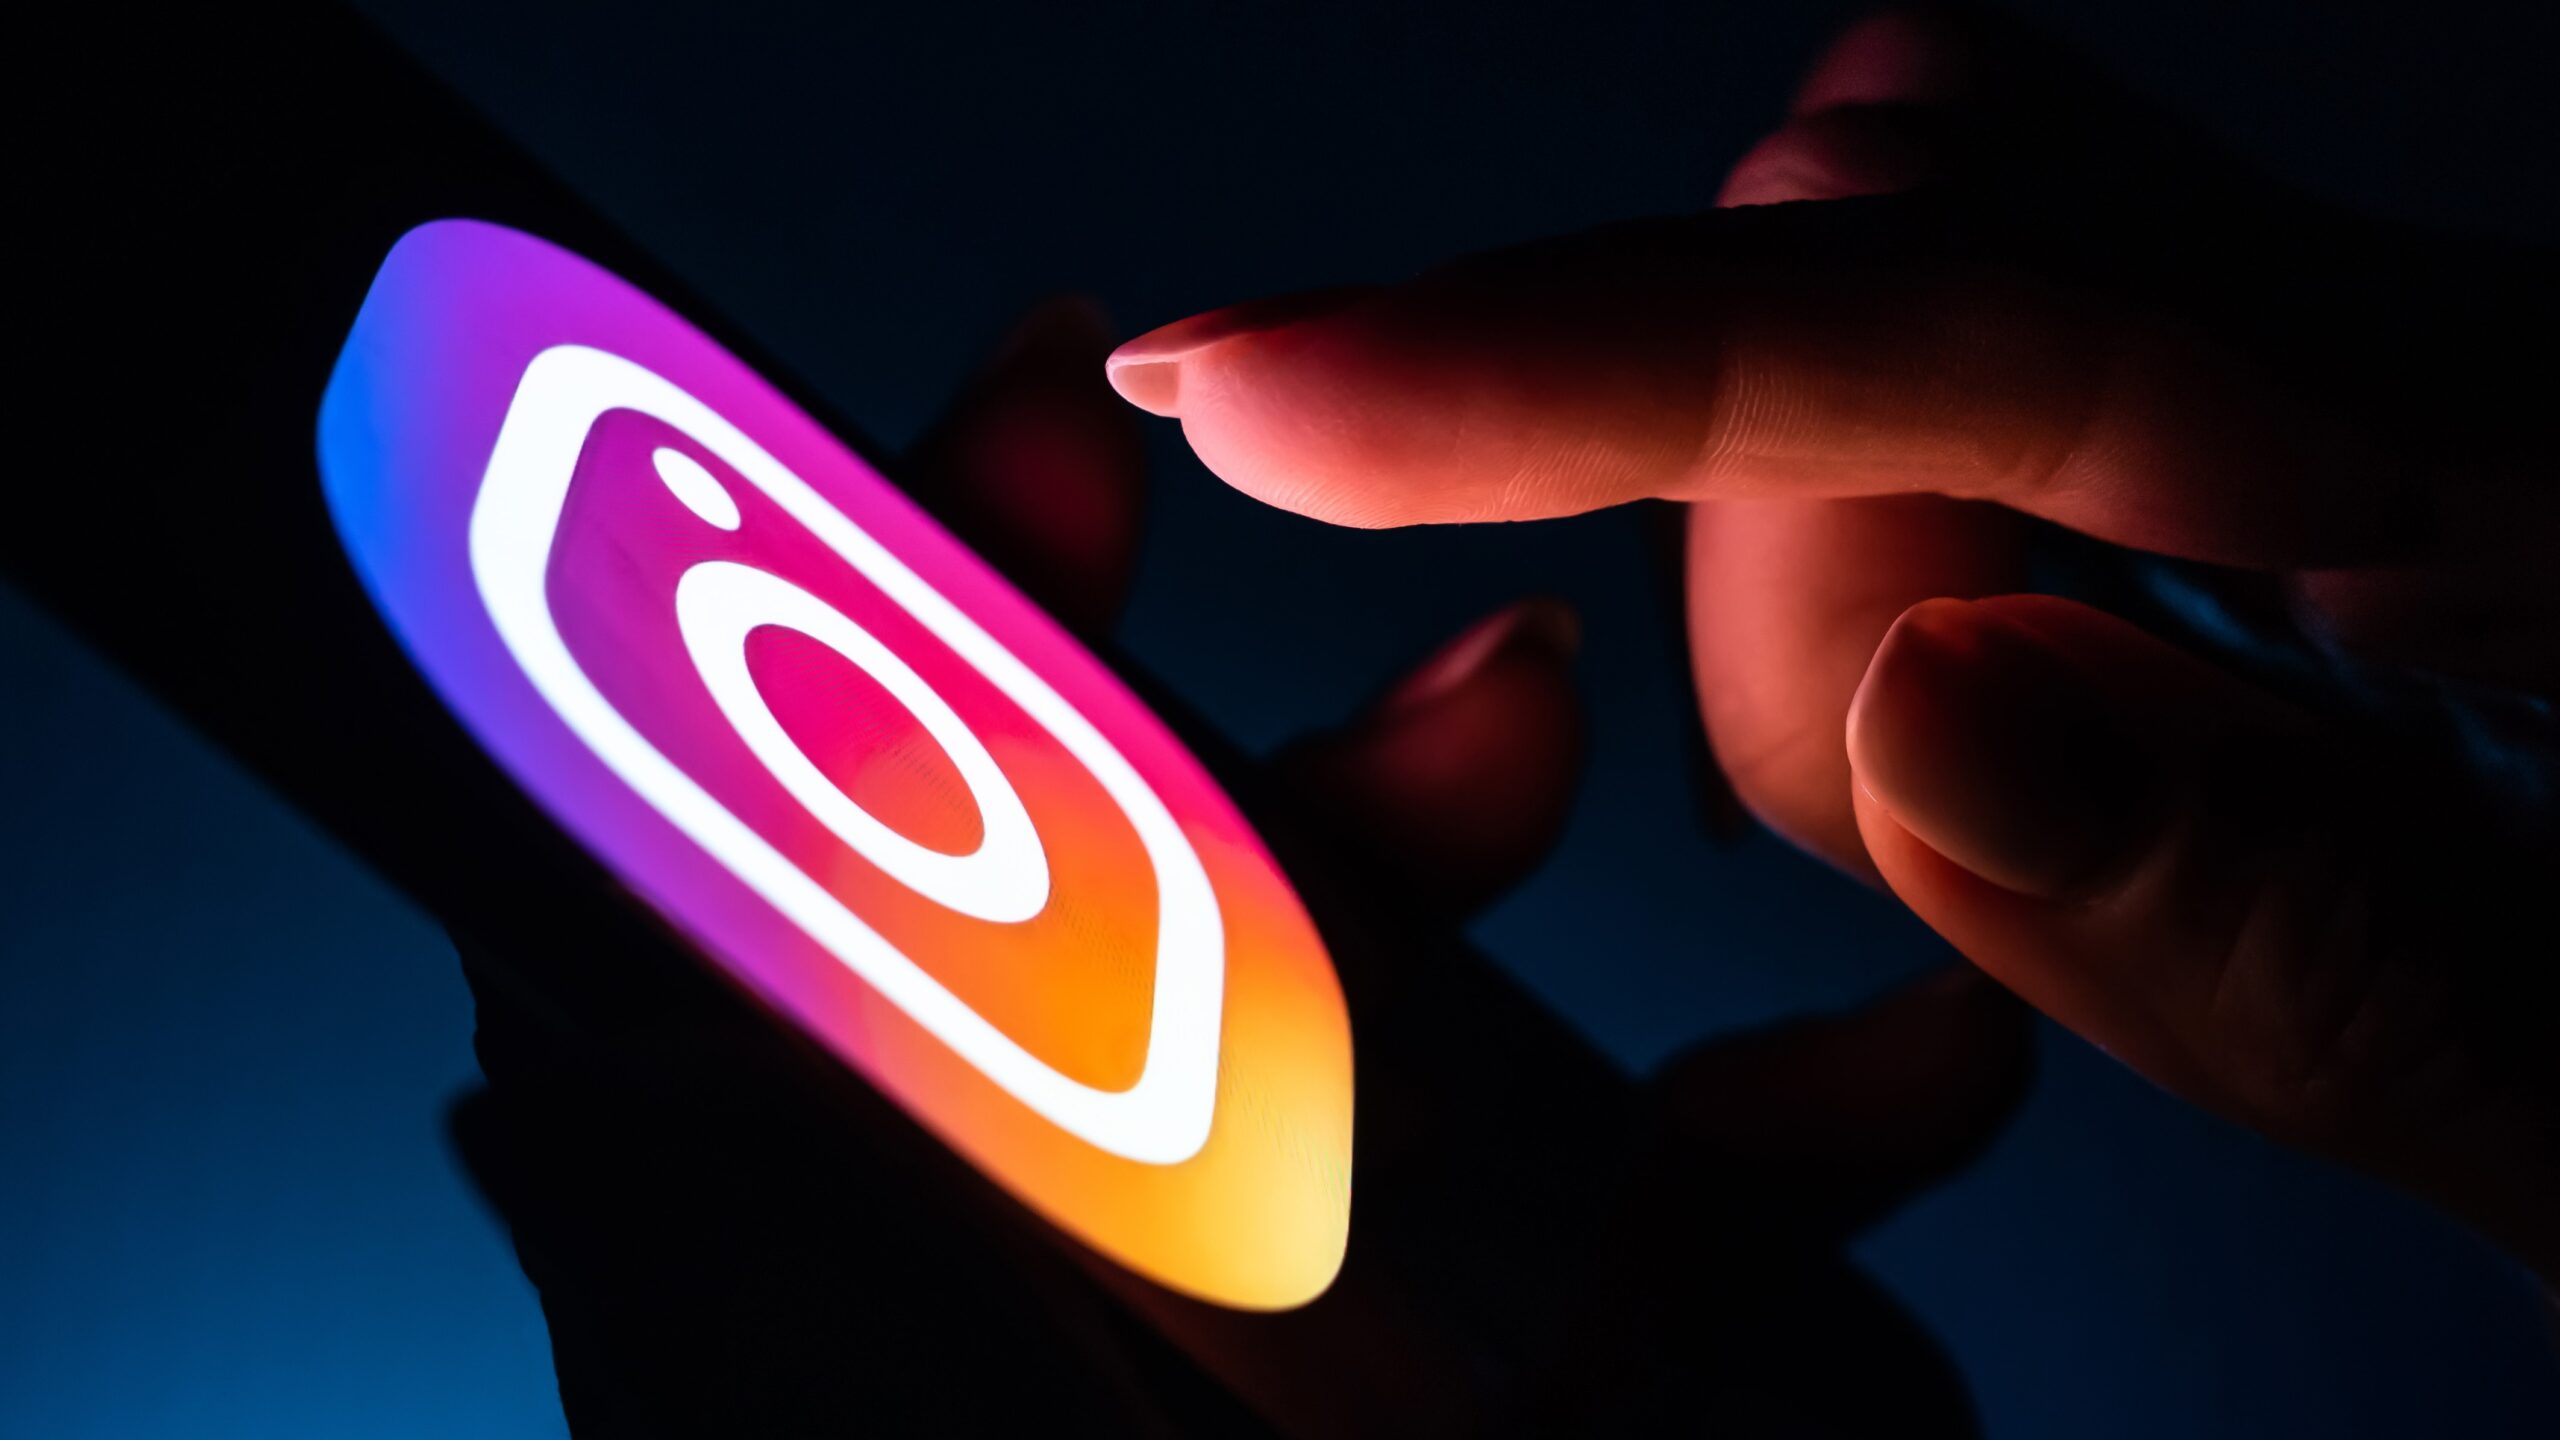 How to use the Instagram password cracker based on your requirements?